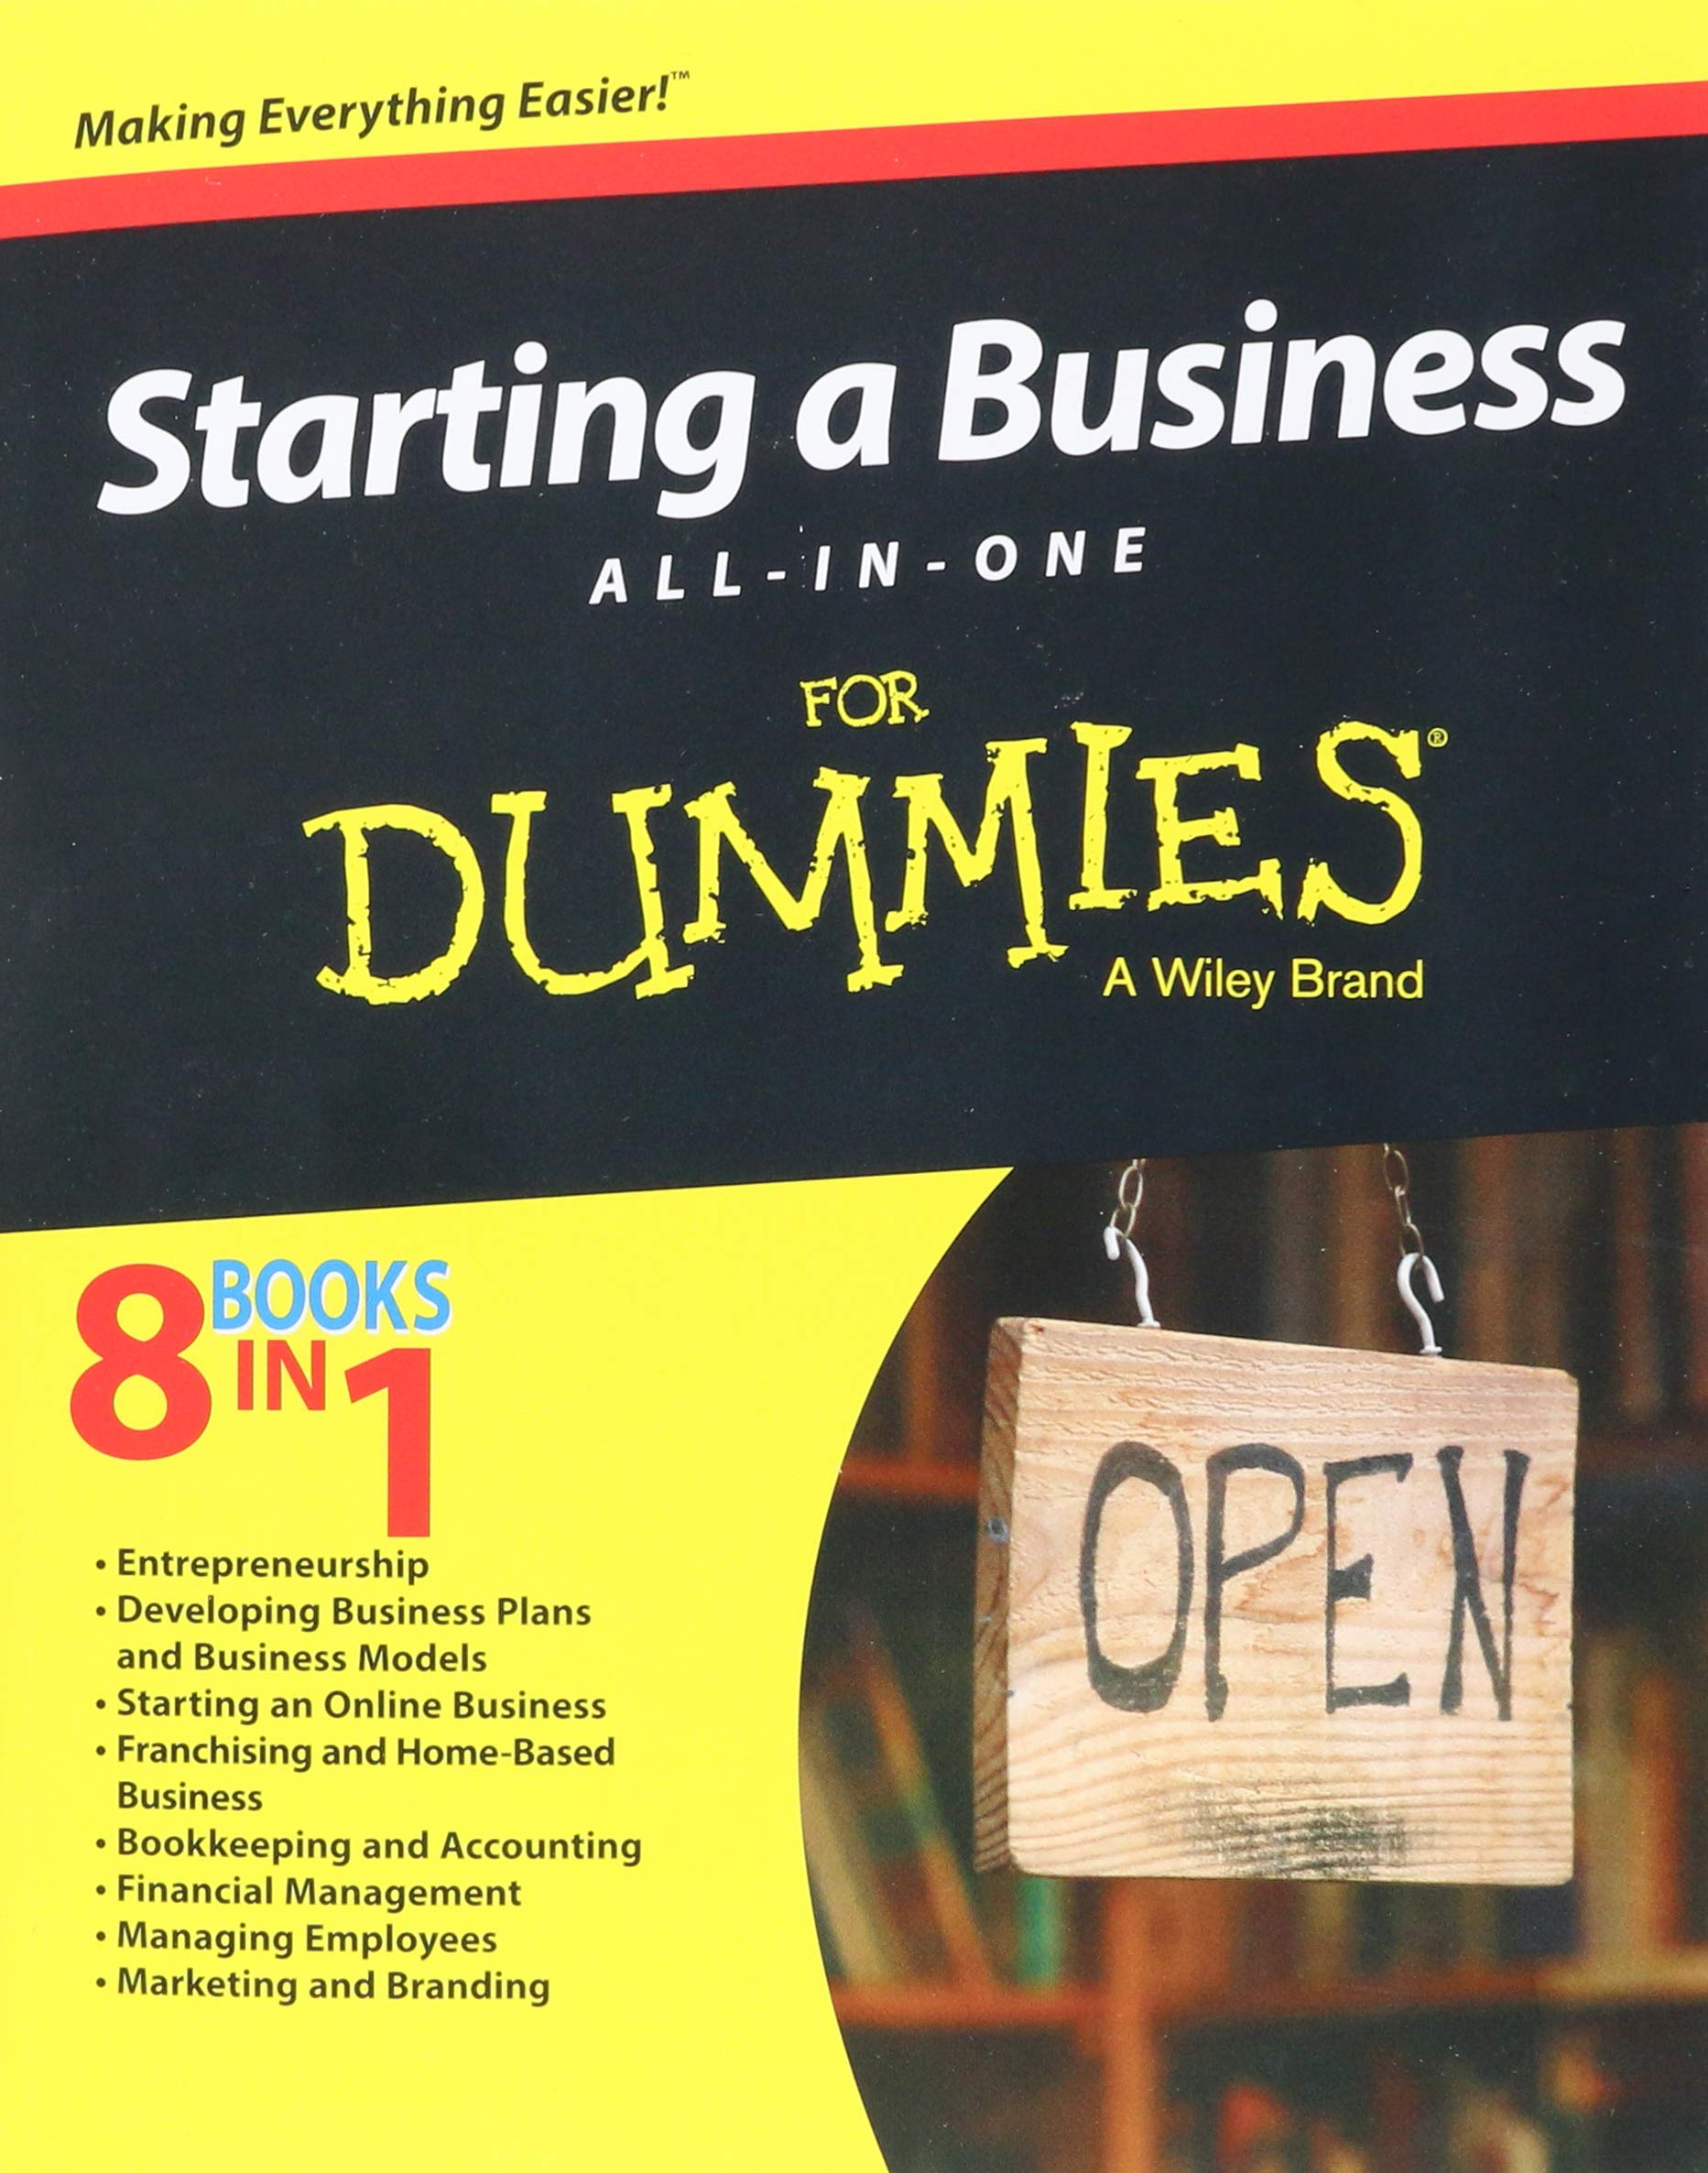 How to open your business without seed capital - practical recommendations for a successful start